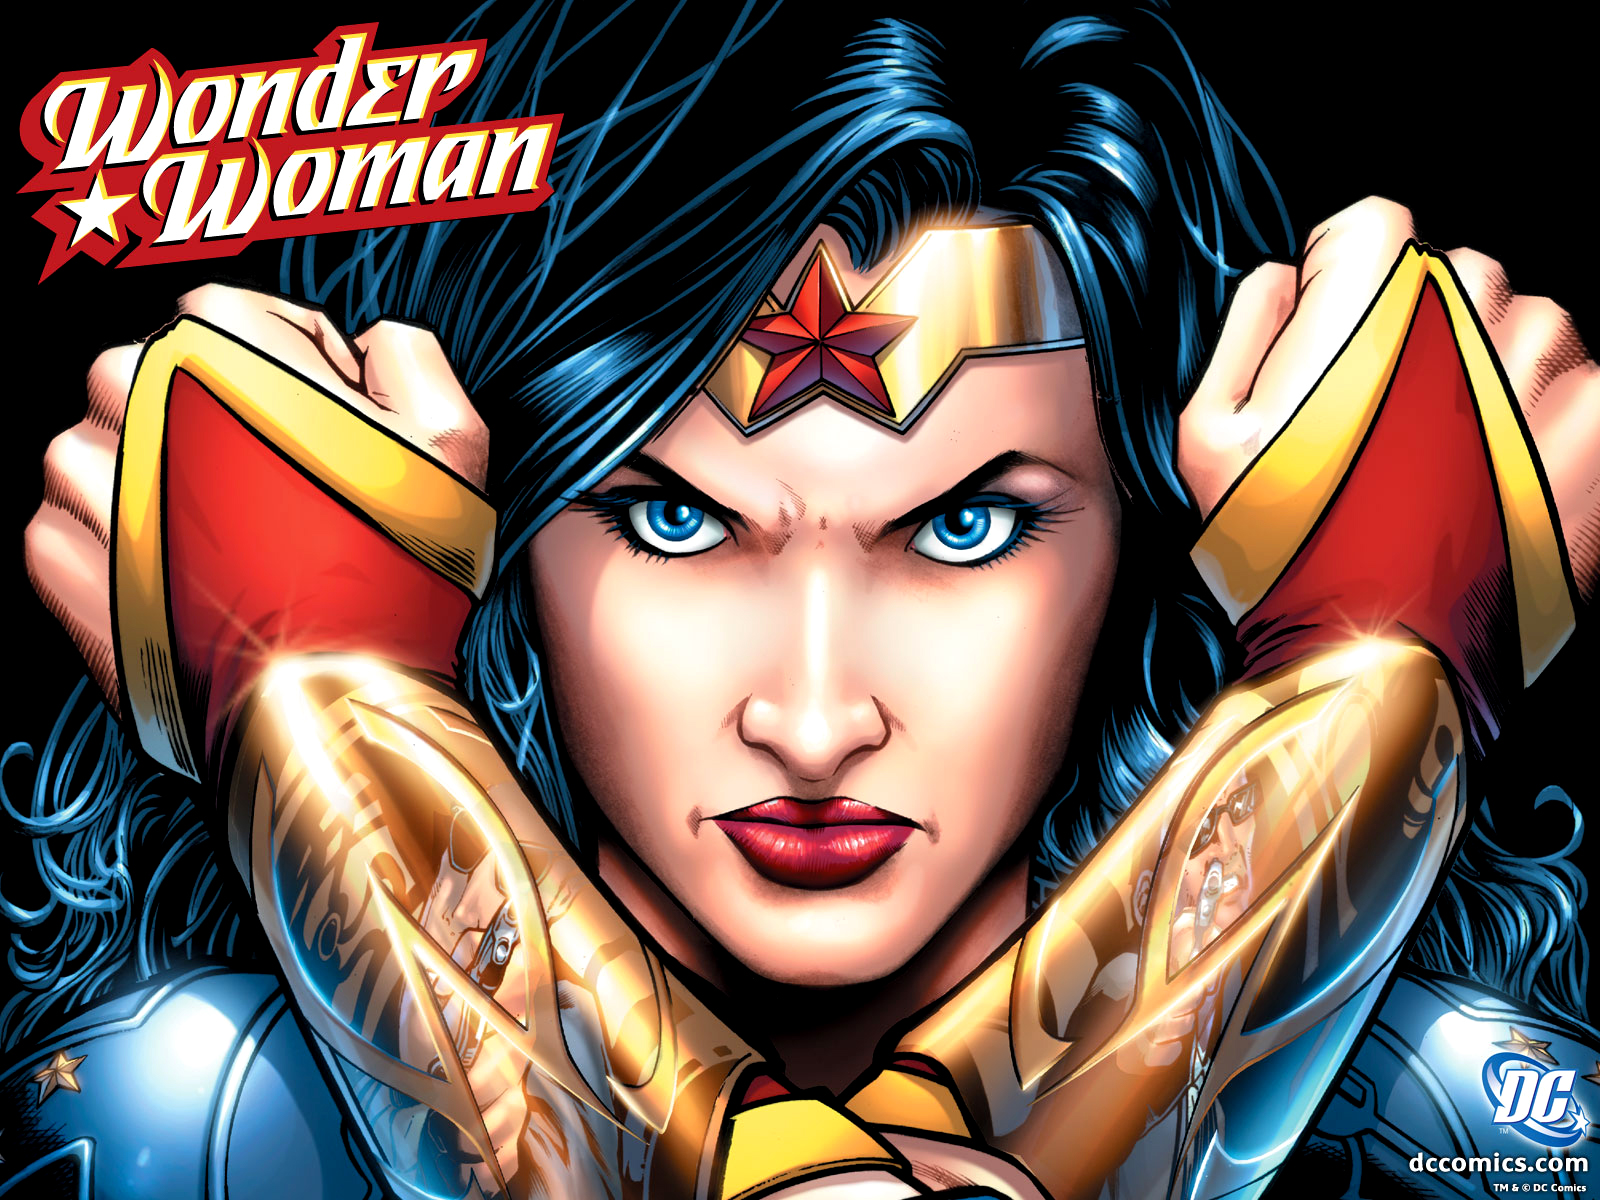 http://2.bp.blogspot.com/-u9tf0cn5pmE/Tm4oVQUQOII/AAAAAAAAC-A/9UWsqjK6utI/s1600/Wonder_Woman_HD_Wallpaper_DC_Comics_www.Vvallpaper.Net.jpg